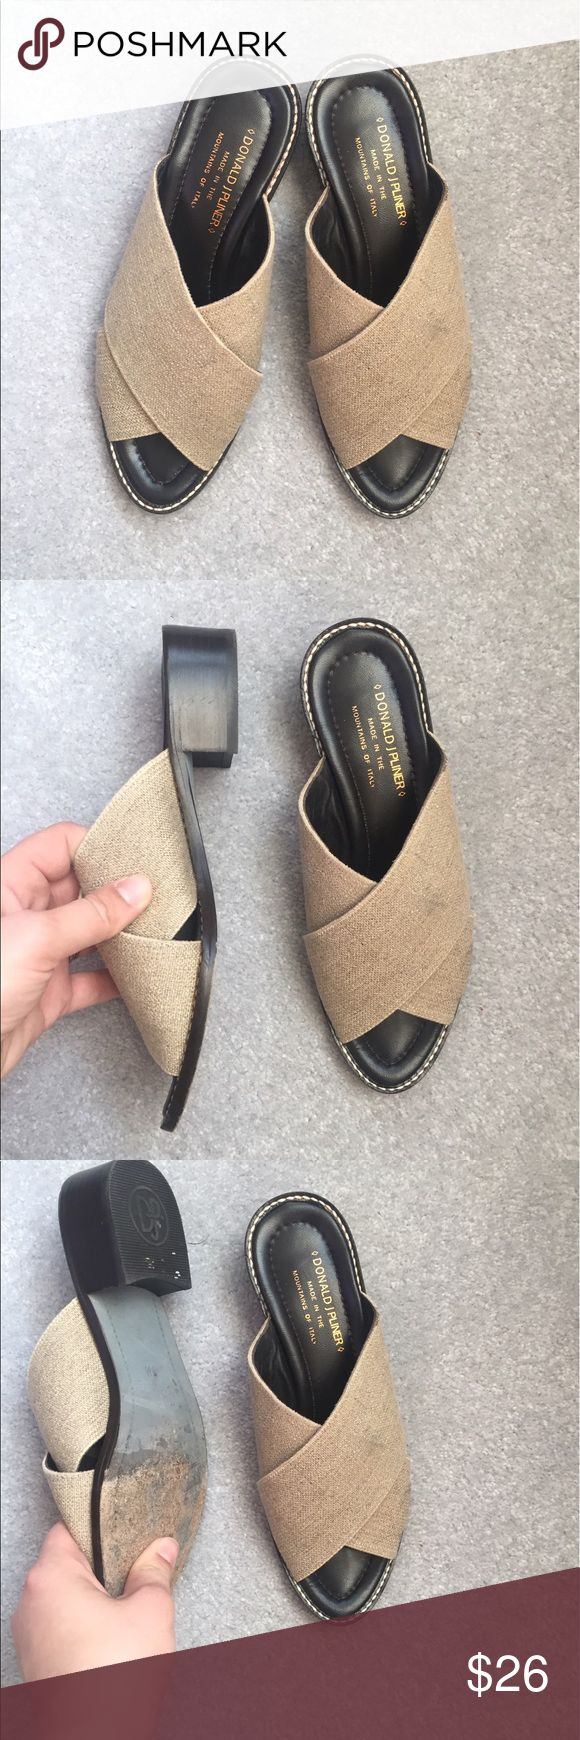 Donald J Pliner Neutral sandal slides size 7 Gorgeous neutral woven material criss cross coverage over the foot with a 1.5 inch block heel sandals from Donald J Pliner in a size 7. They are in very good condition with light wear. Donald J. Pliner Shoes Sandals